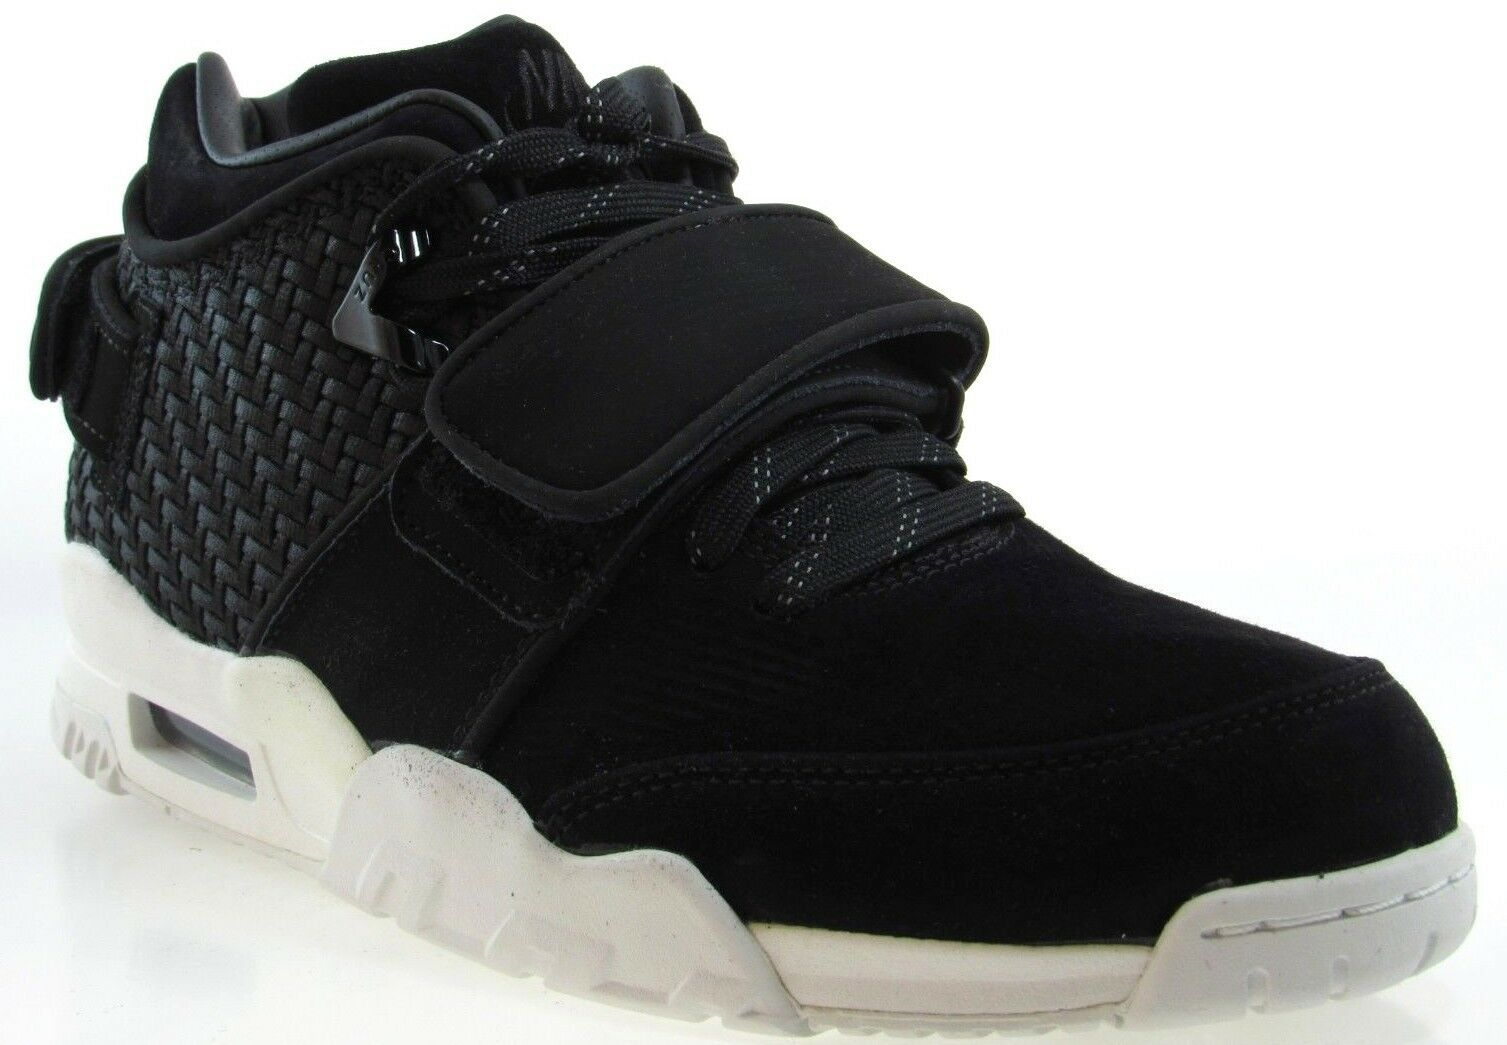 514cc10593b7 Nike Air Trainer Victor Cruz Black Suede 777535-004 Mens Sizes 8 for ...